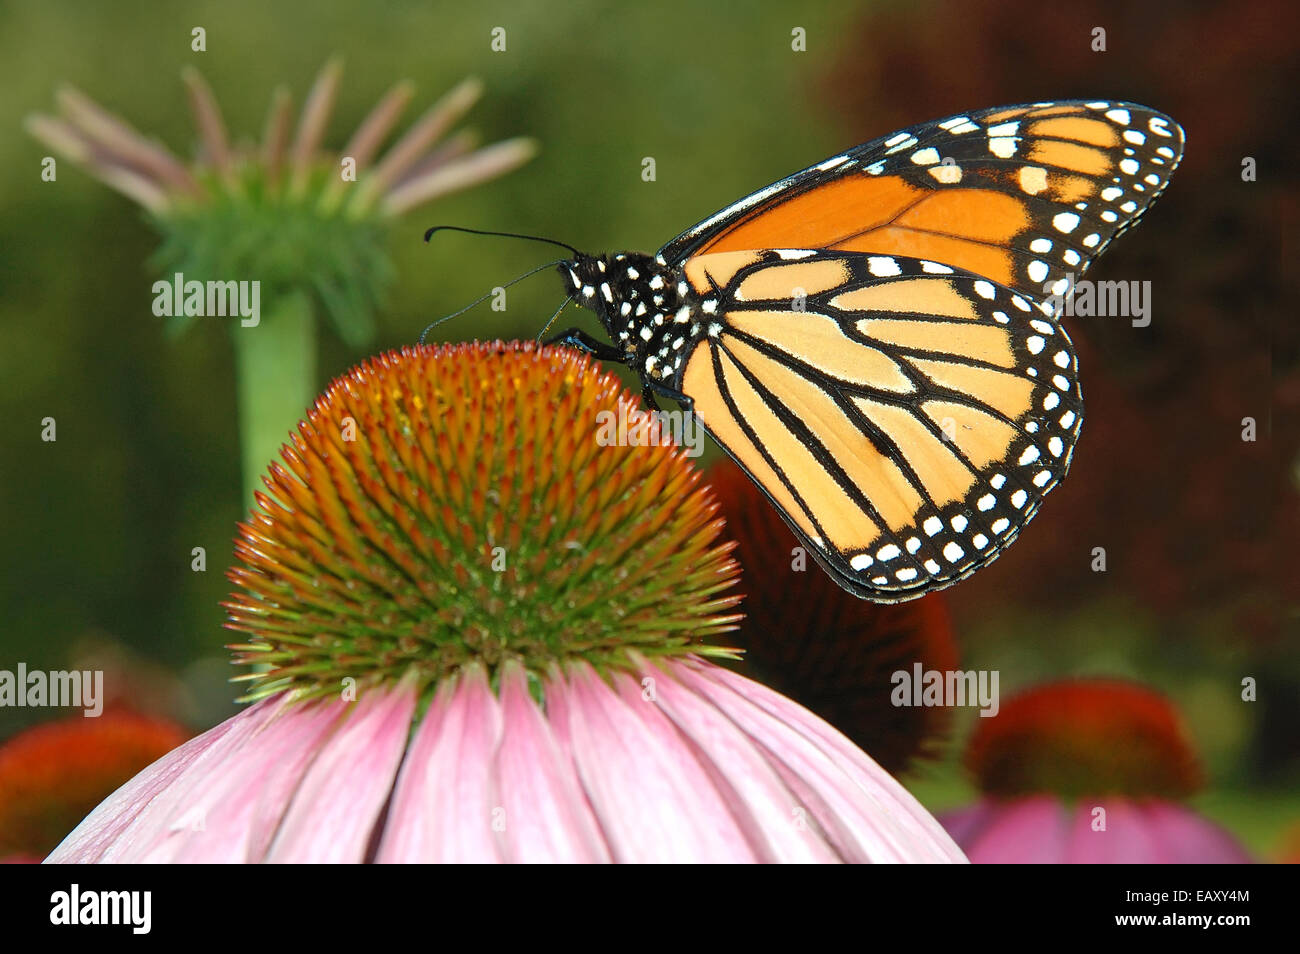 Monarch Butterfly, Feeding on nectar - Stock Image